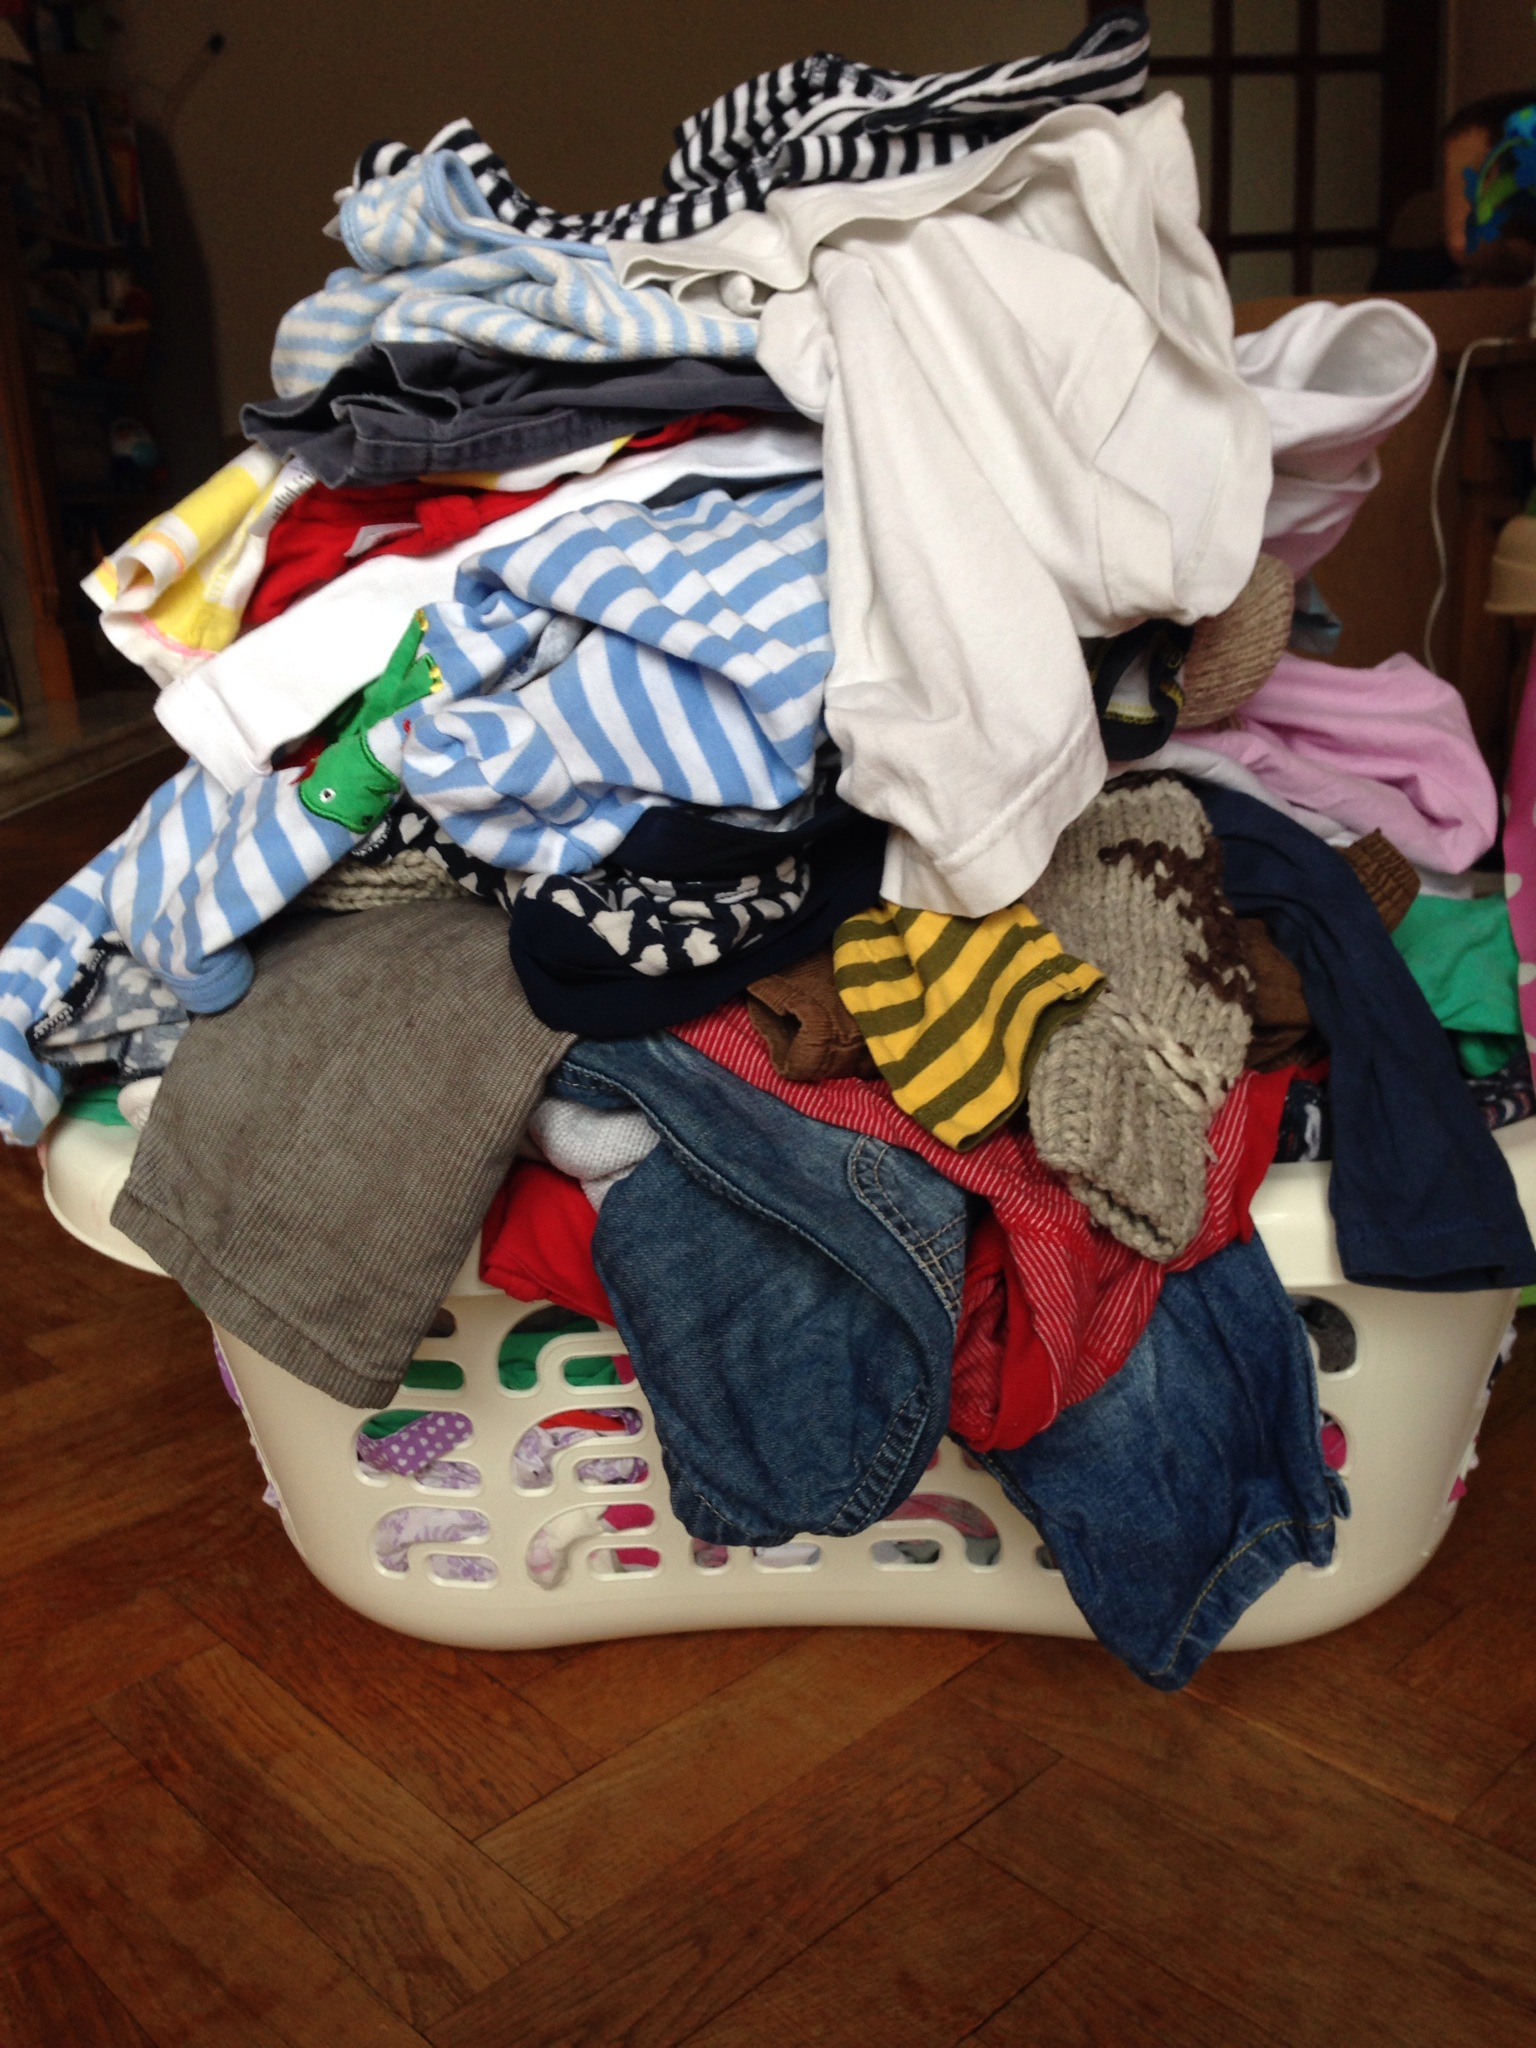 How does this big basket of ironing make you feel?